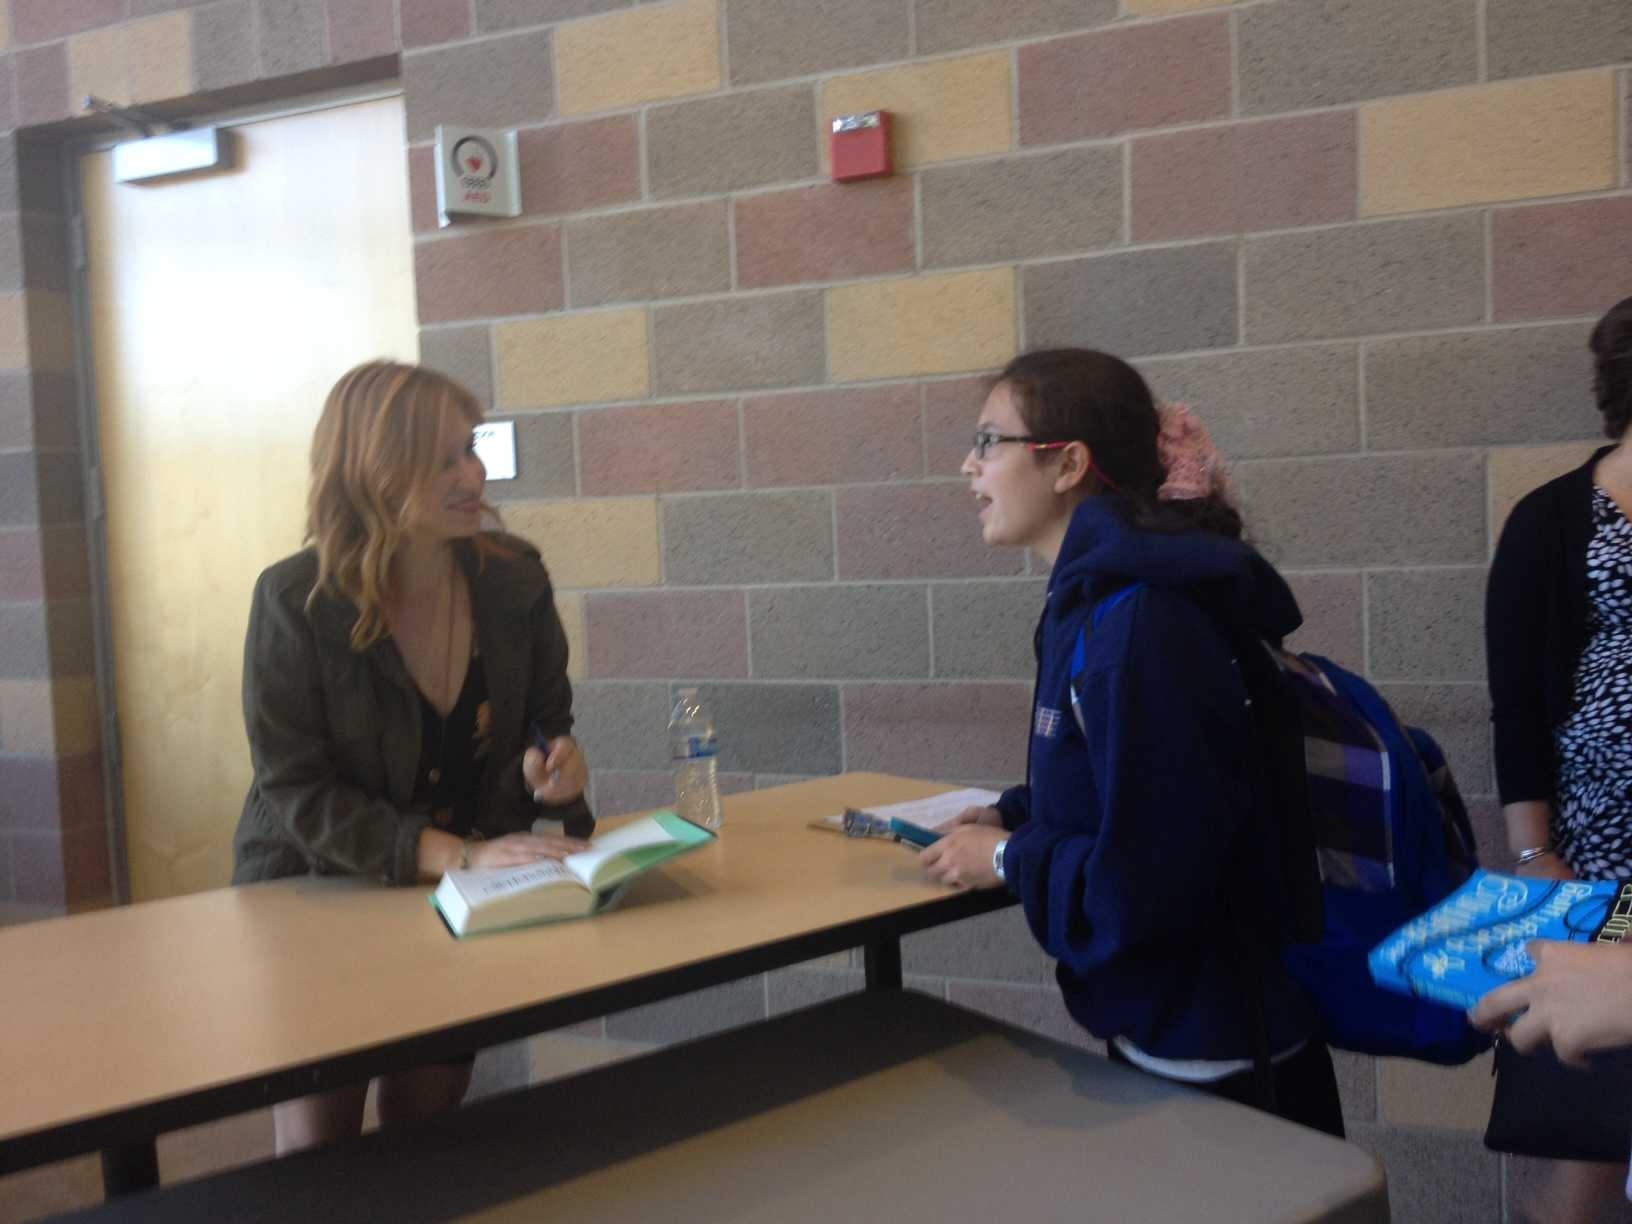 Freshman Alyssa Higdon meets Schneider after the book talk to get Schneider's autograph.